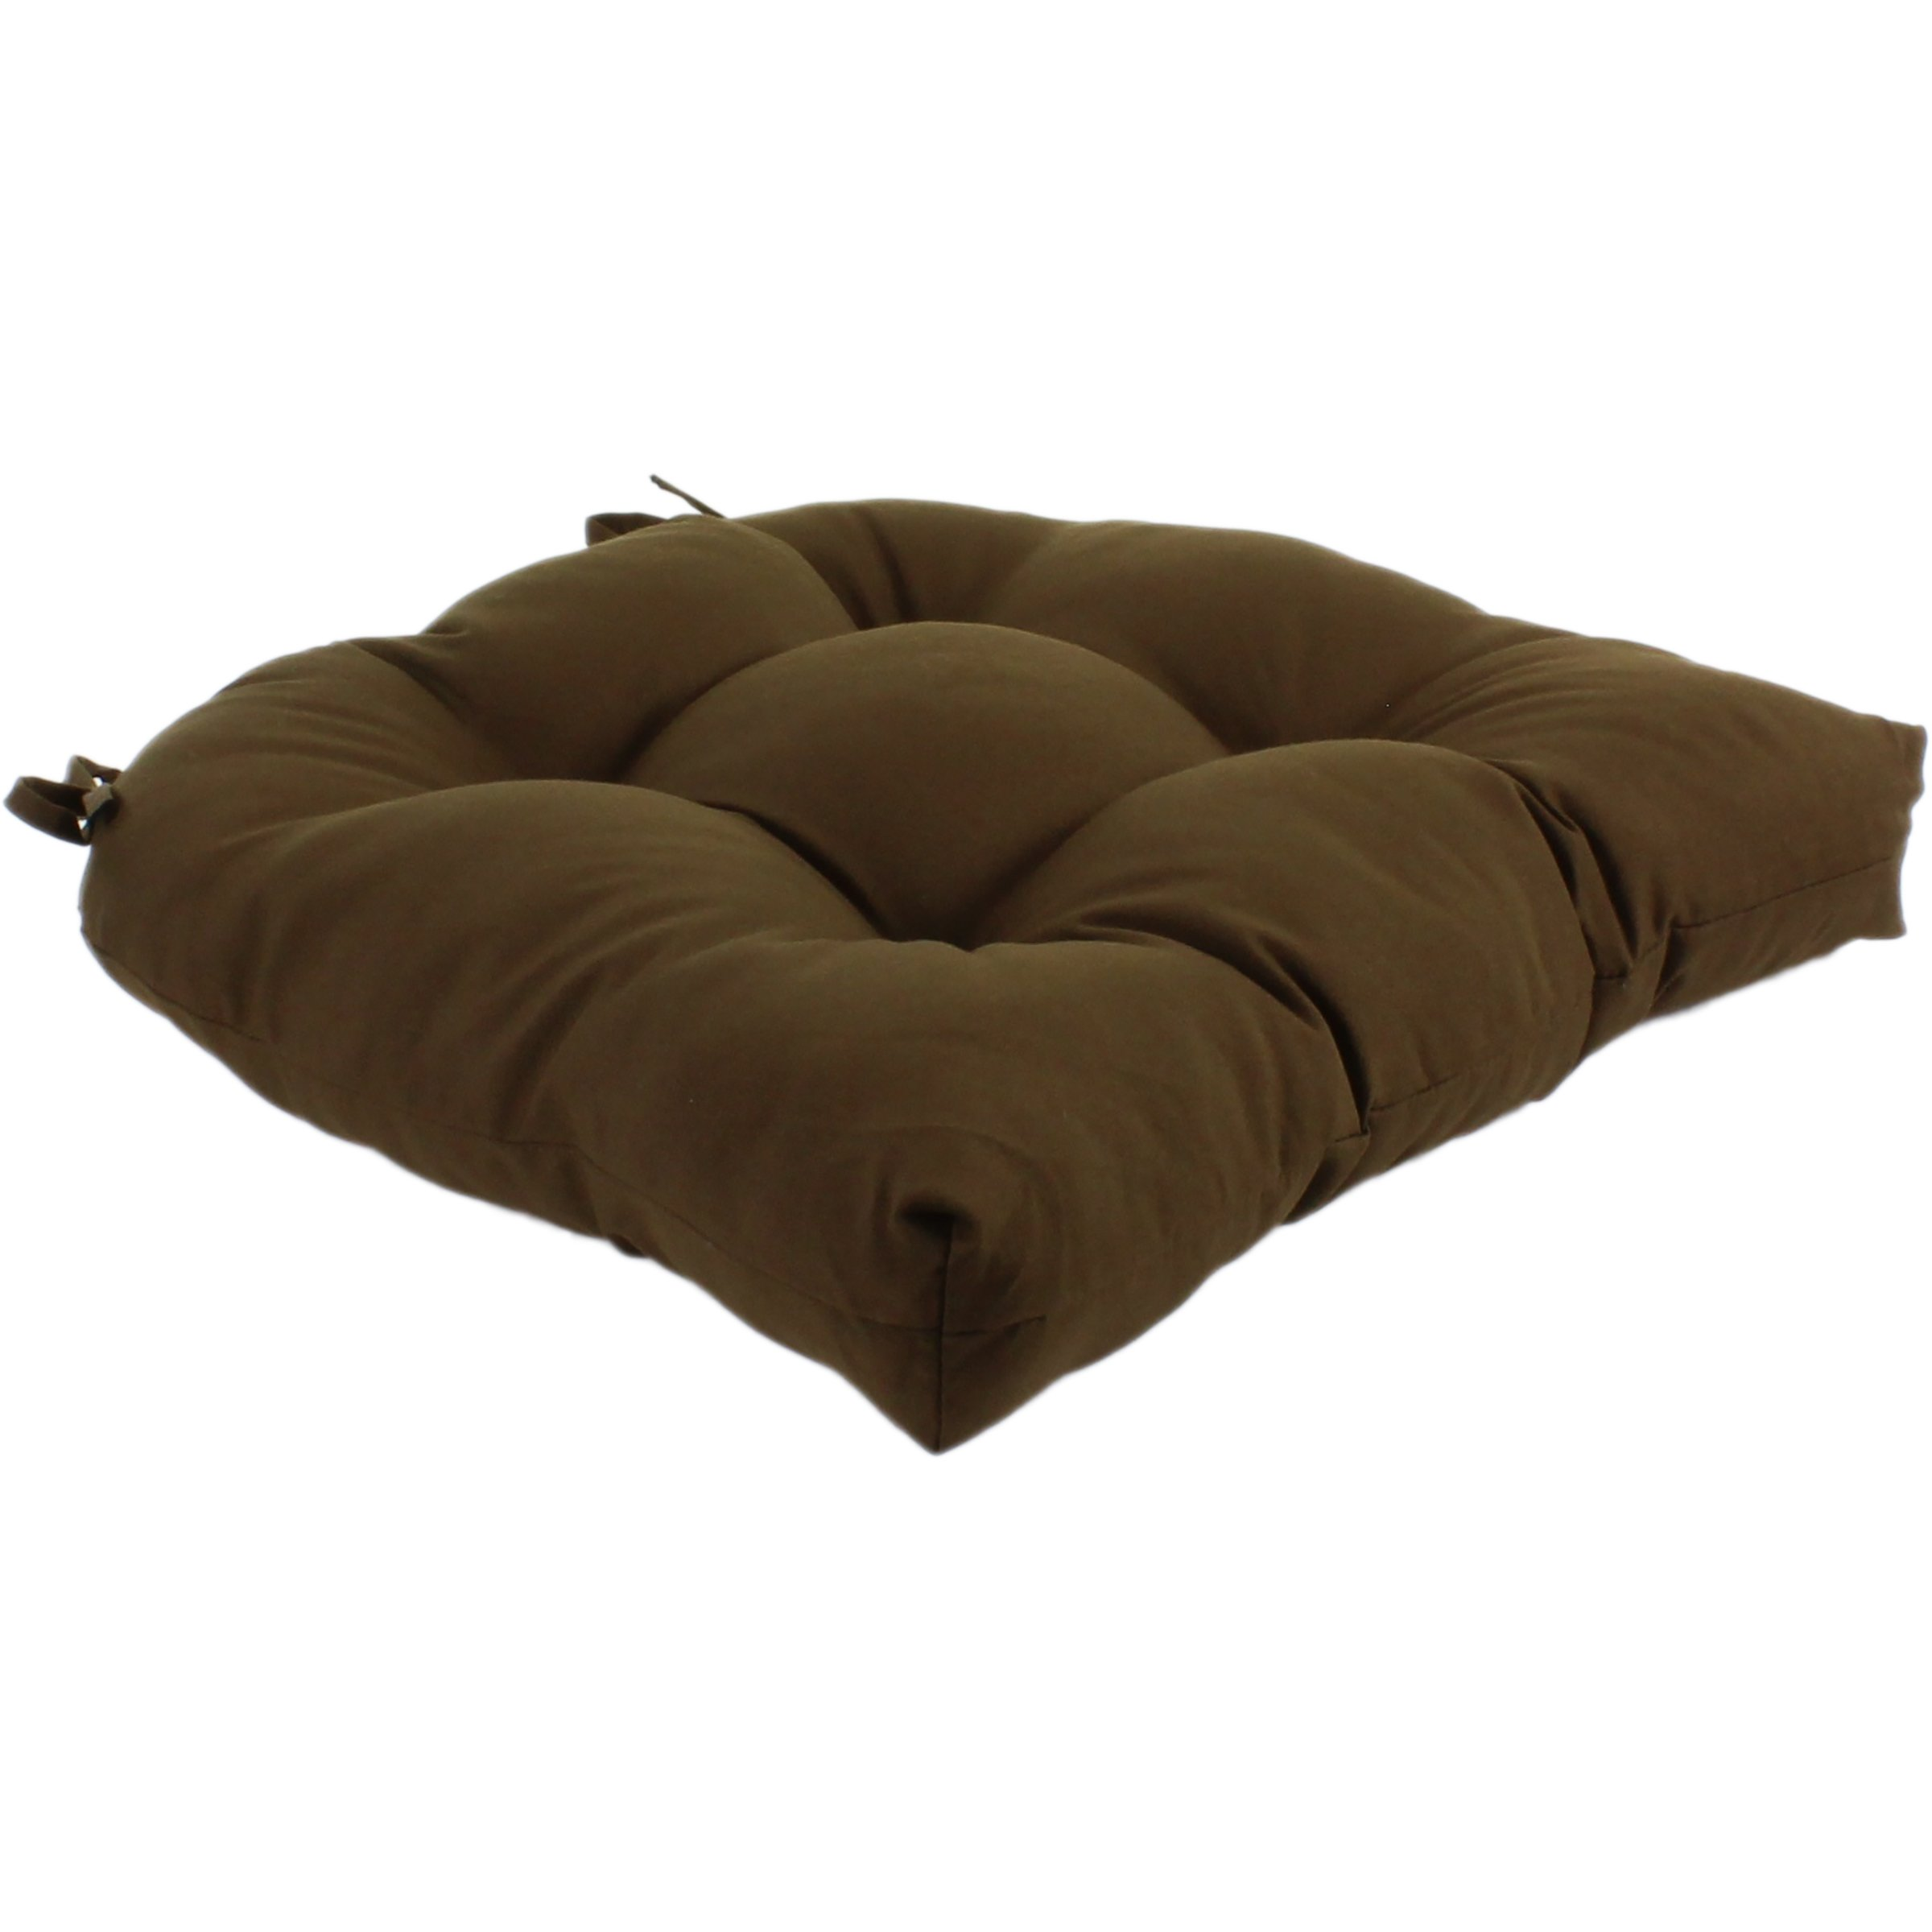 College Covers 15218023UDC Indoor/Outdoor Seat Patio D Cushion, Brown